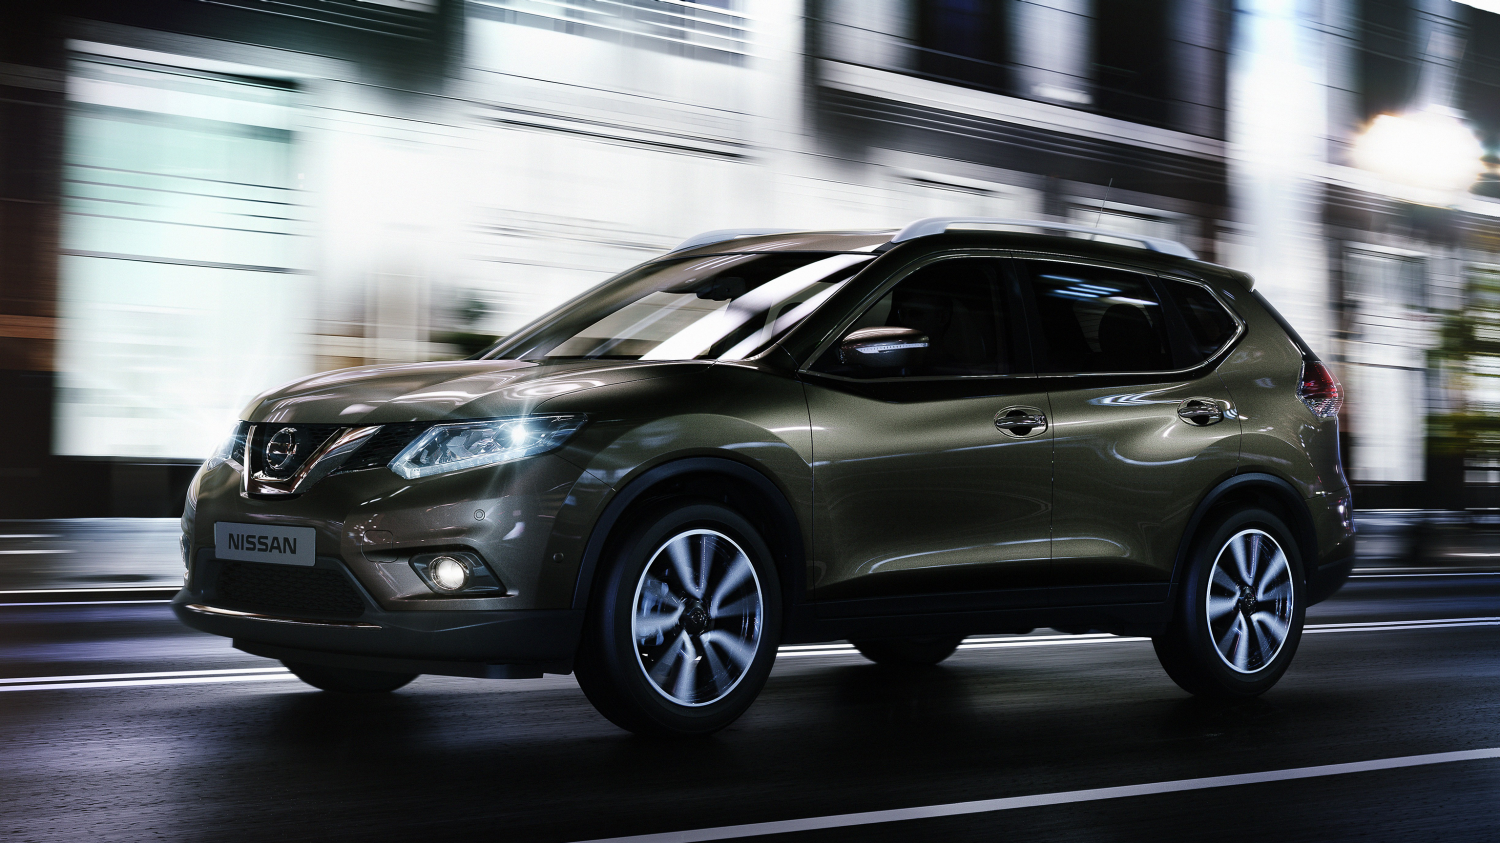 Nissan X-Trail Titanium olive - Profile view driving in city